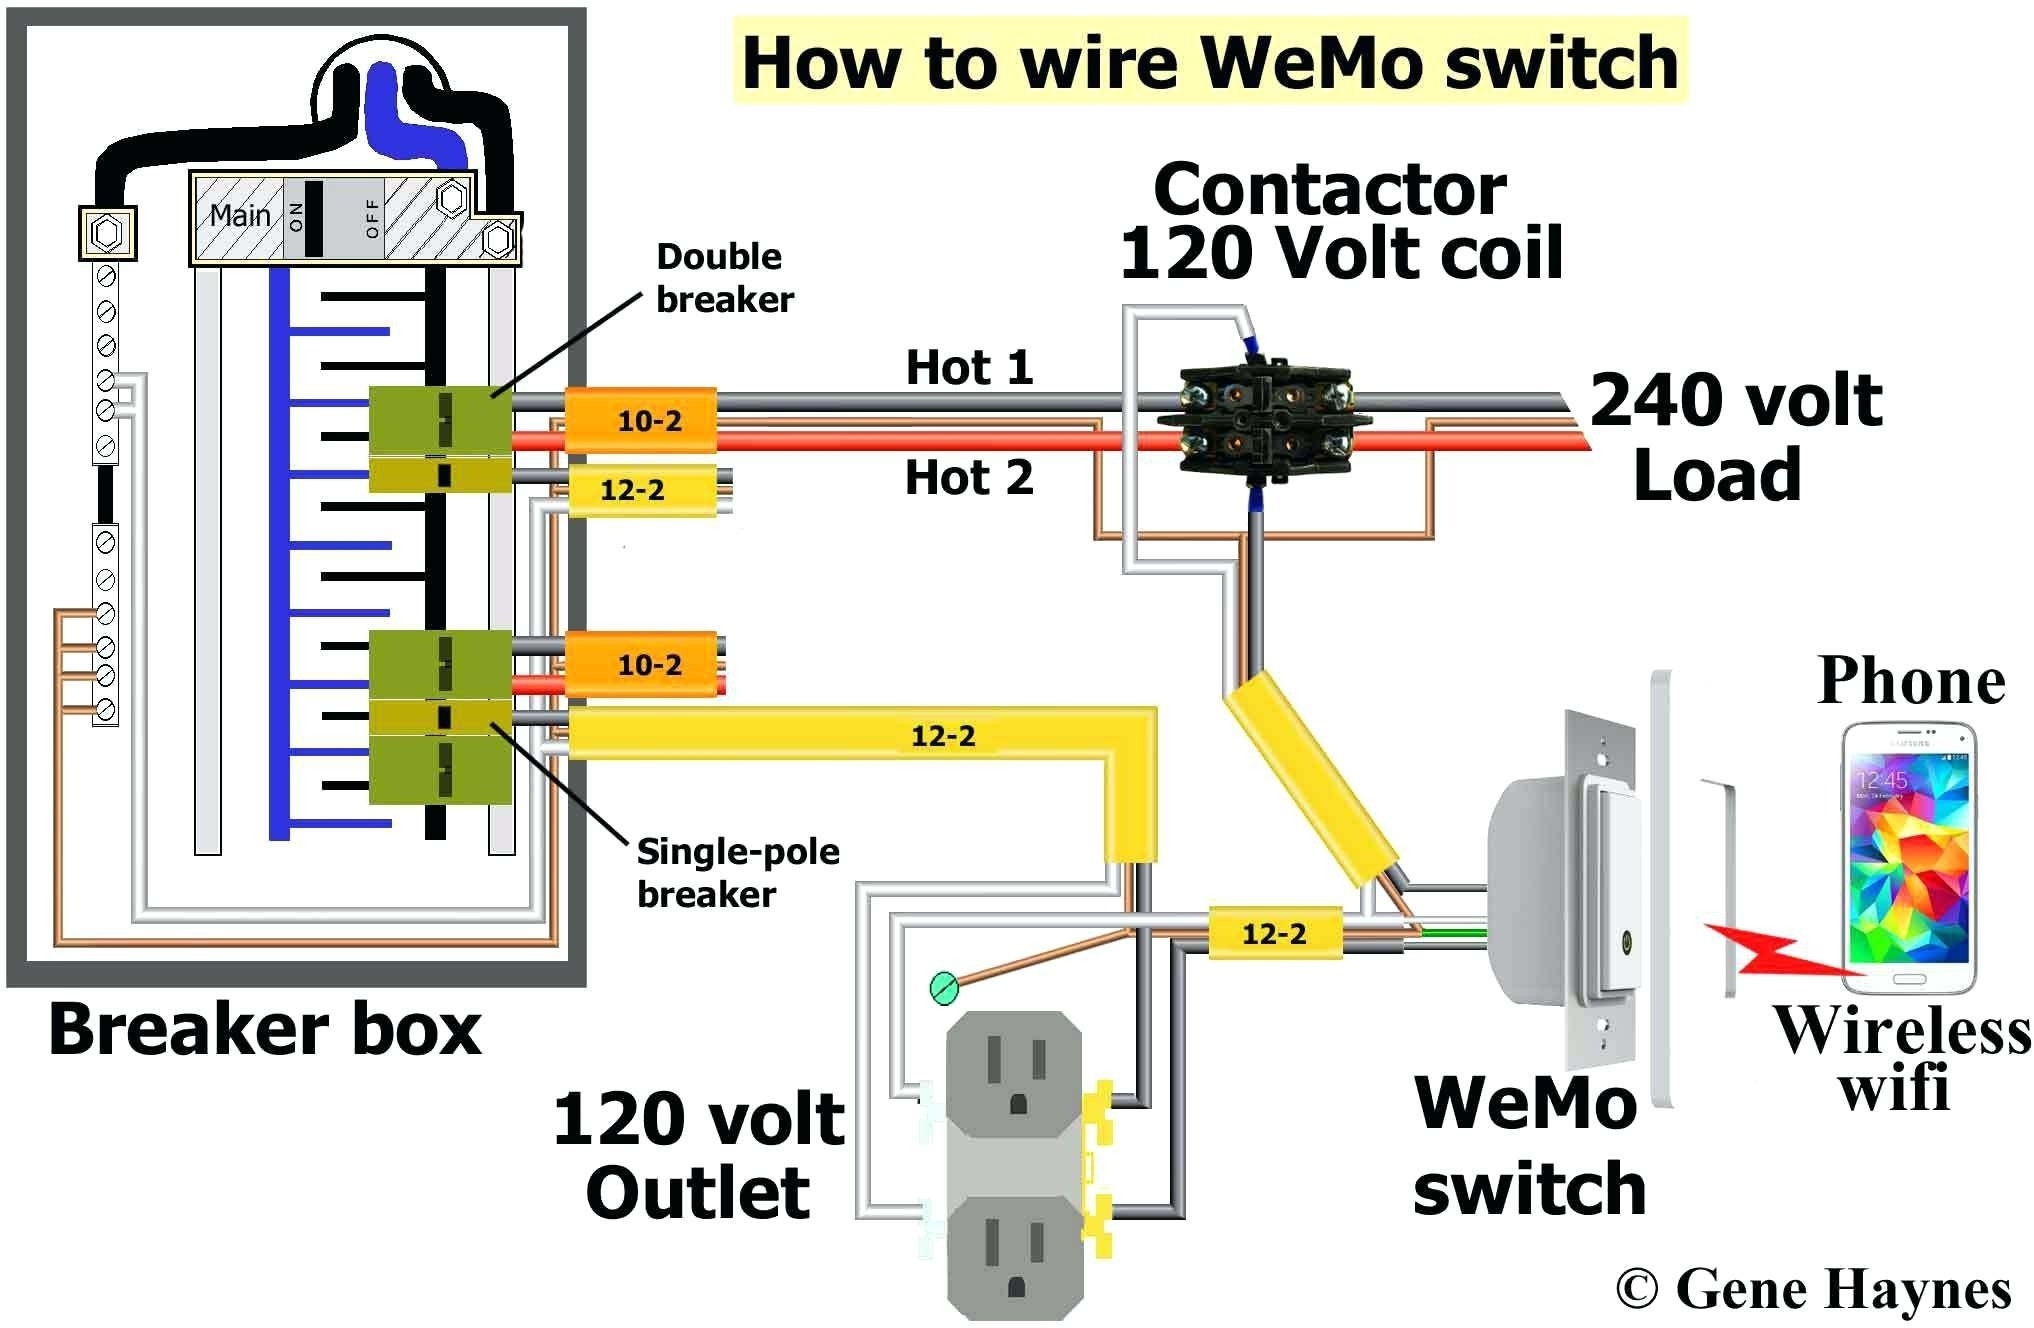 Cat 5 Wall Jack Wiring Diagram Furthermore Cat 5 Wiring Wall Outlet